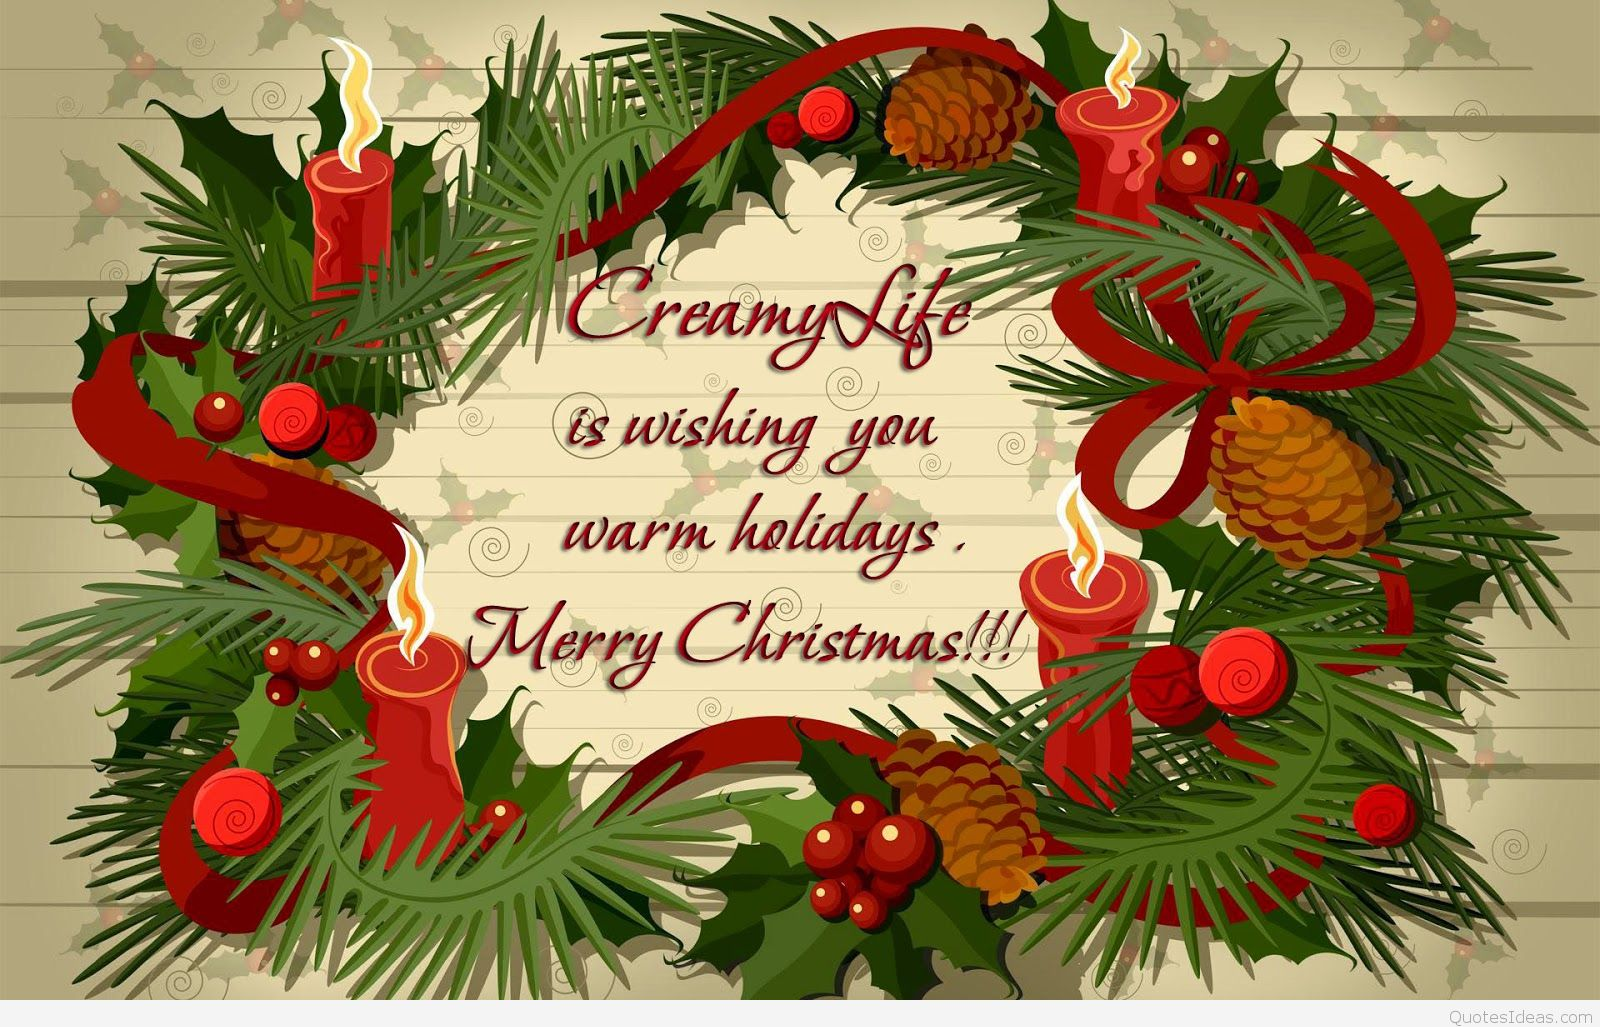 Christmas day quotes in hindi